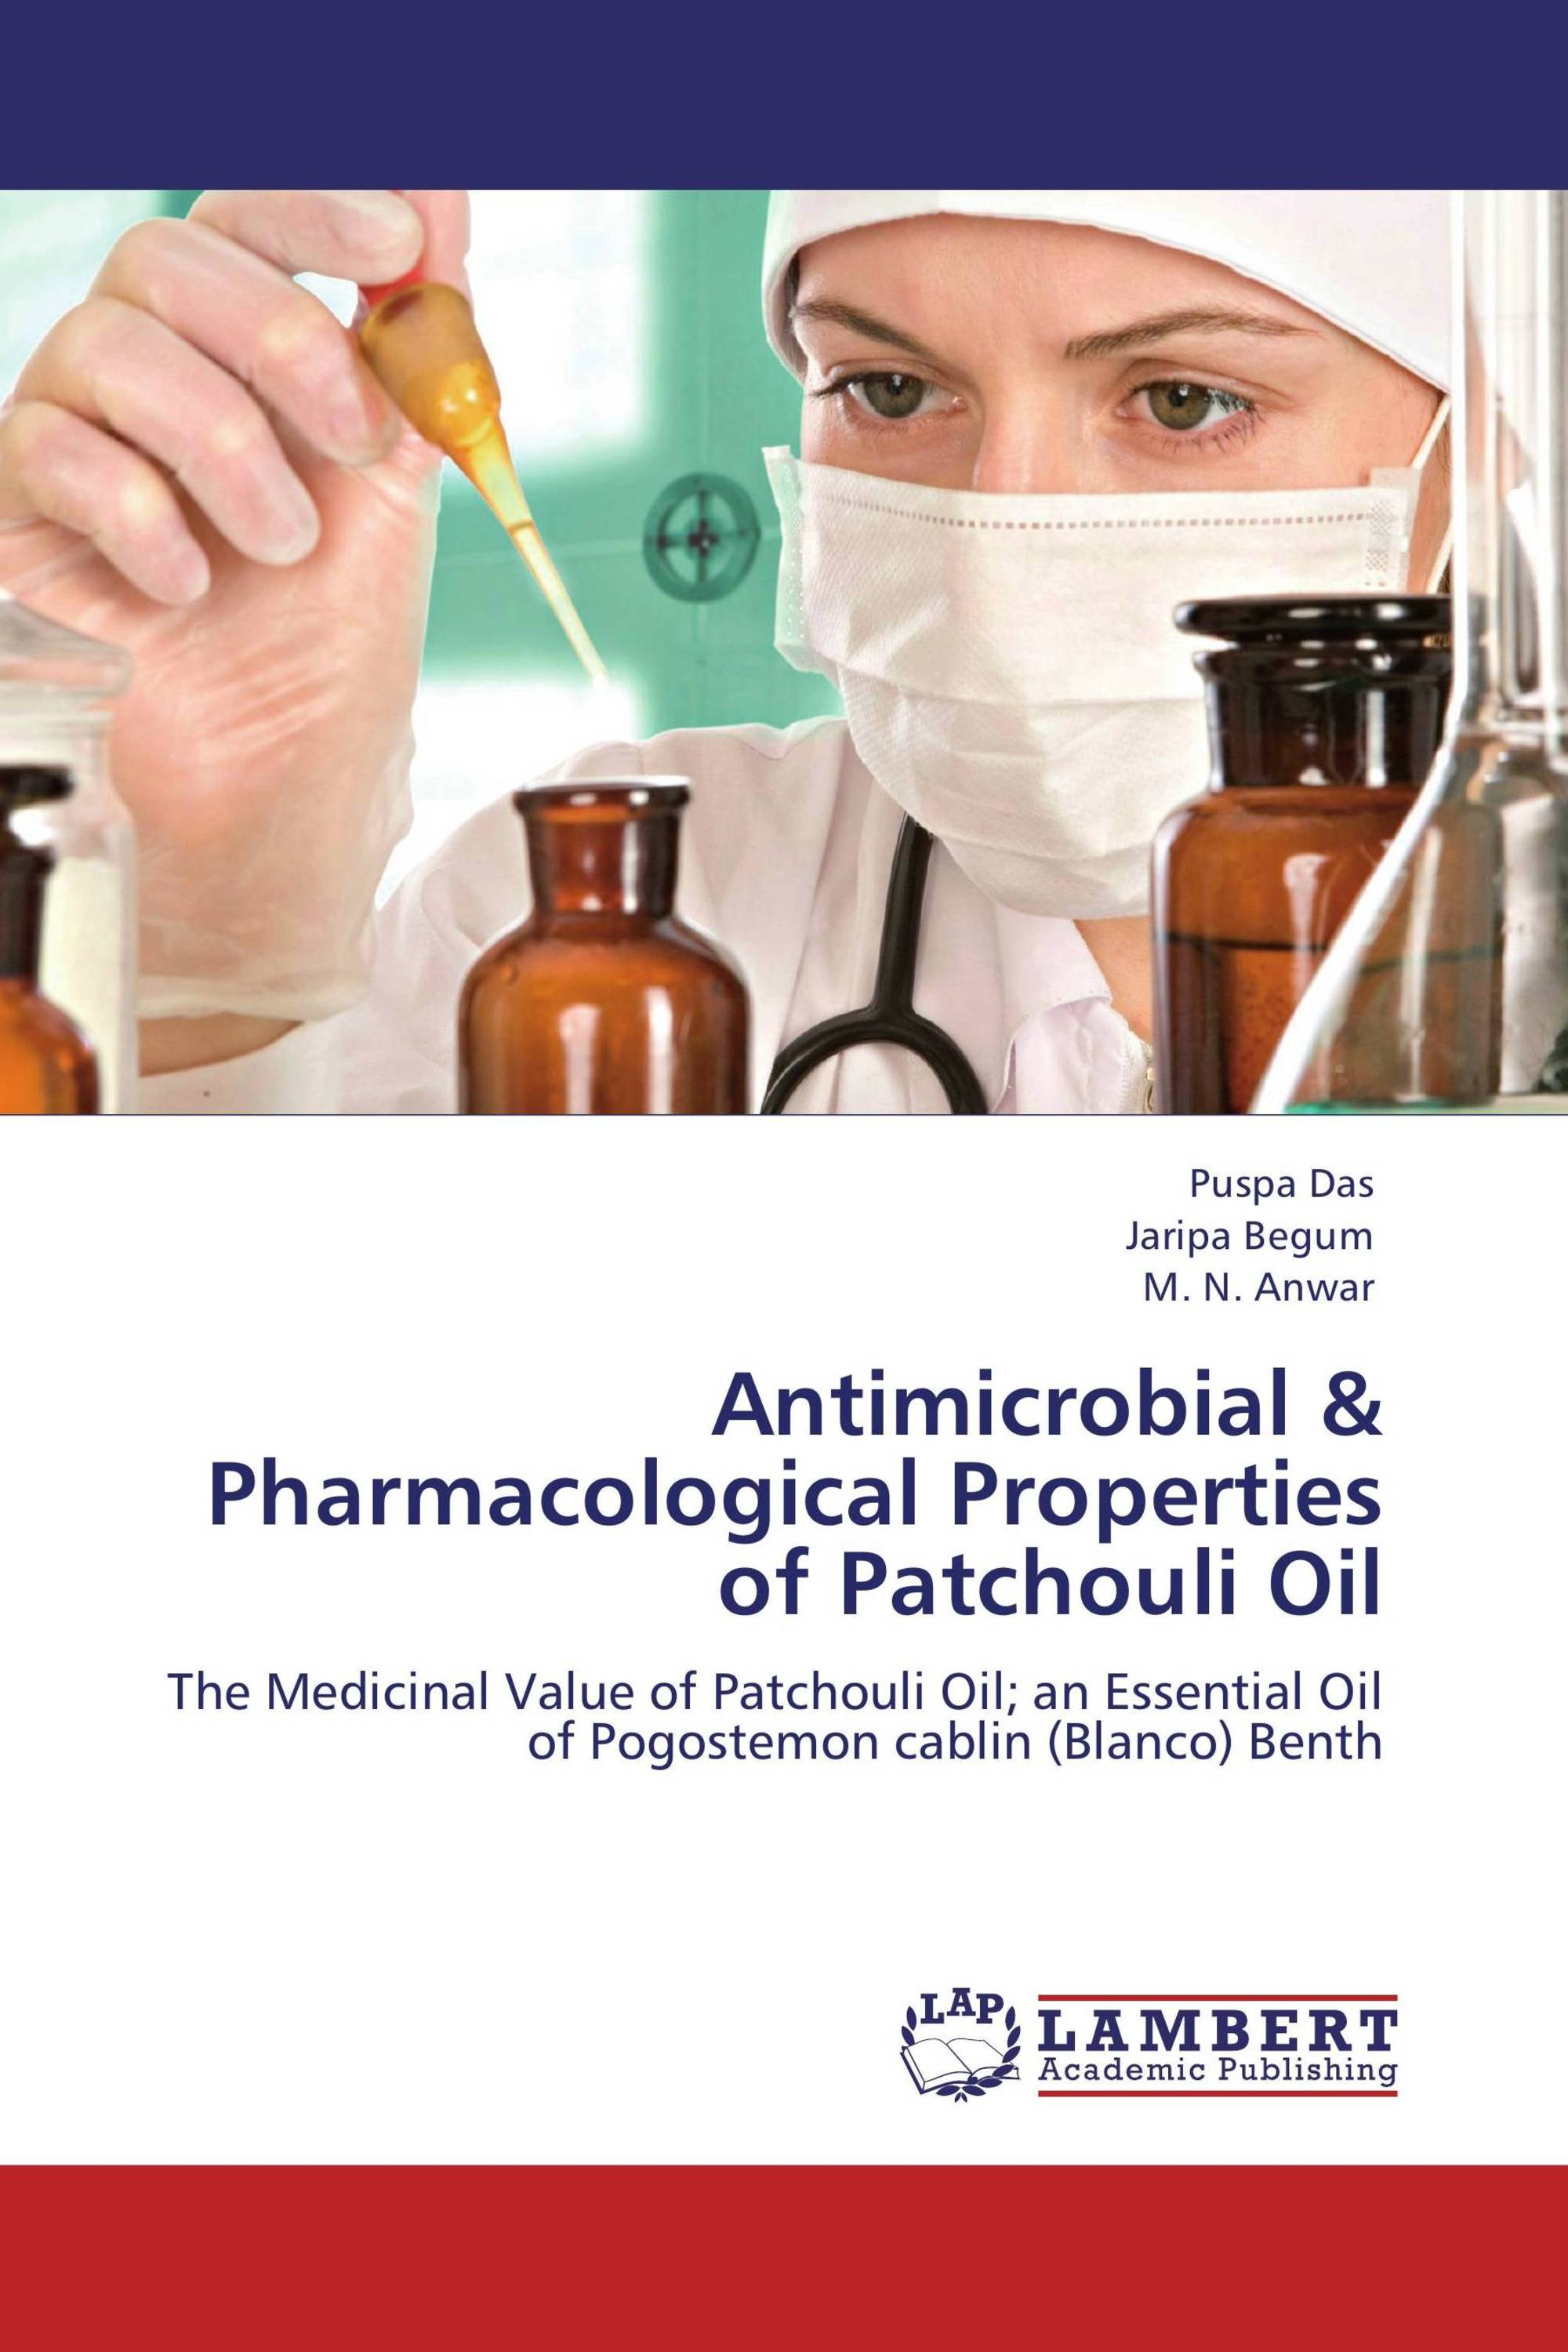 Antimicrobial & Pharmacological Properties of Patchouli Oil